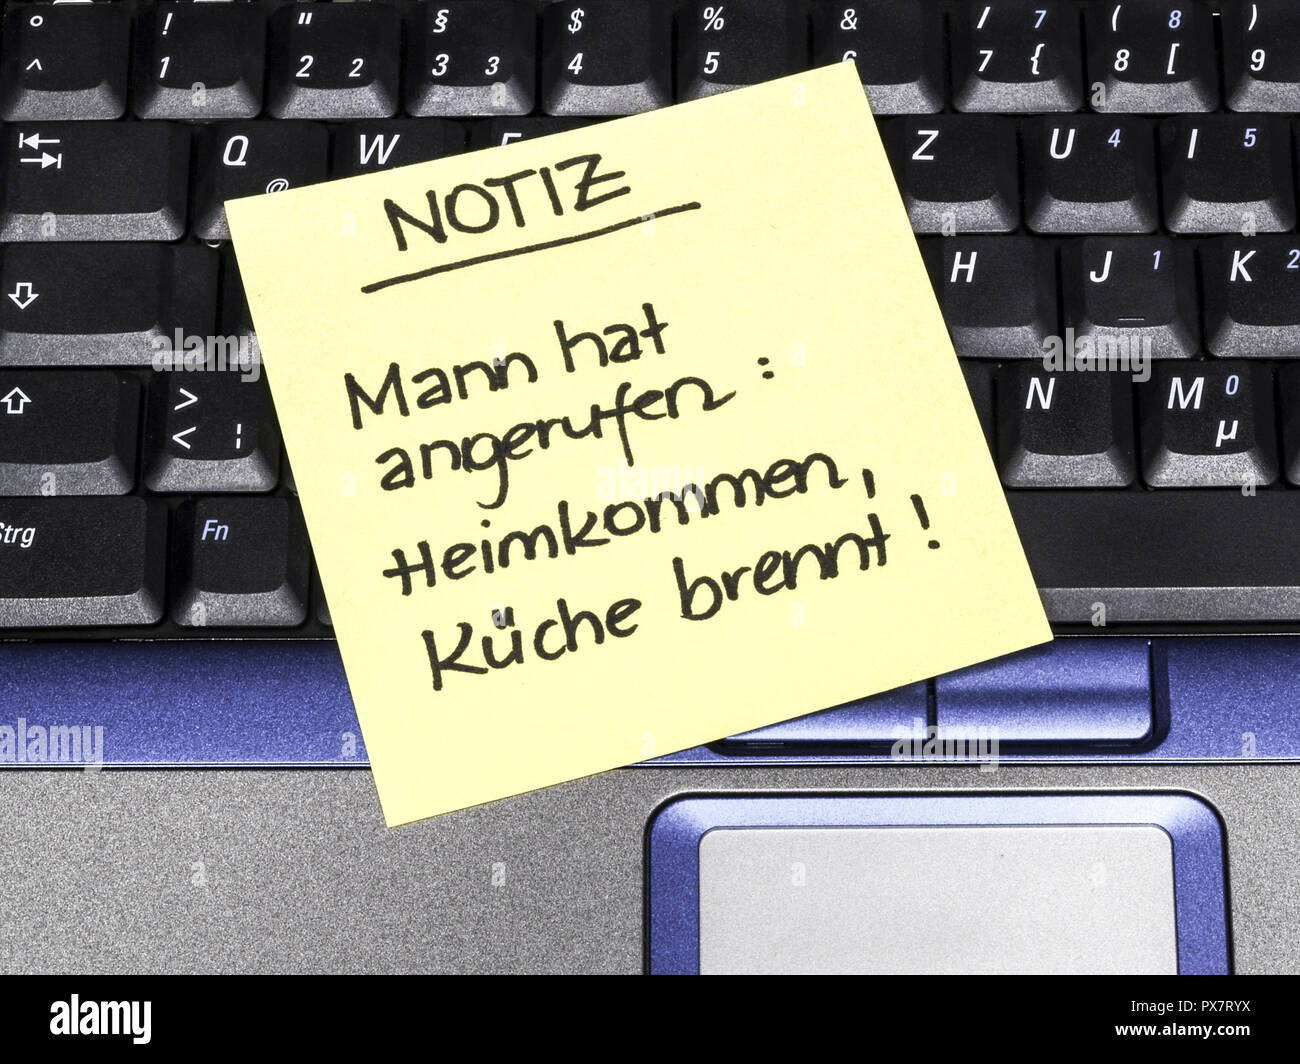 Memo note on notebook, note husband called coming home kitchen is burning paternity leave - Stock Image